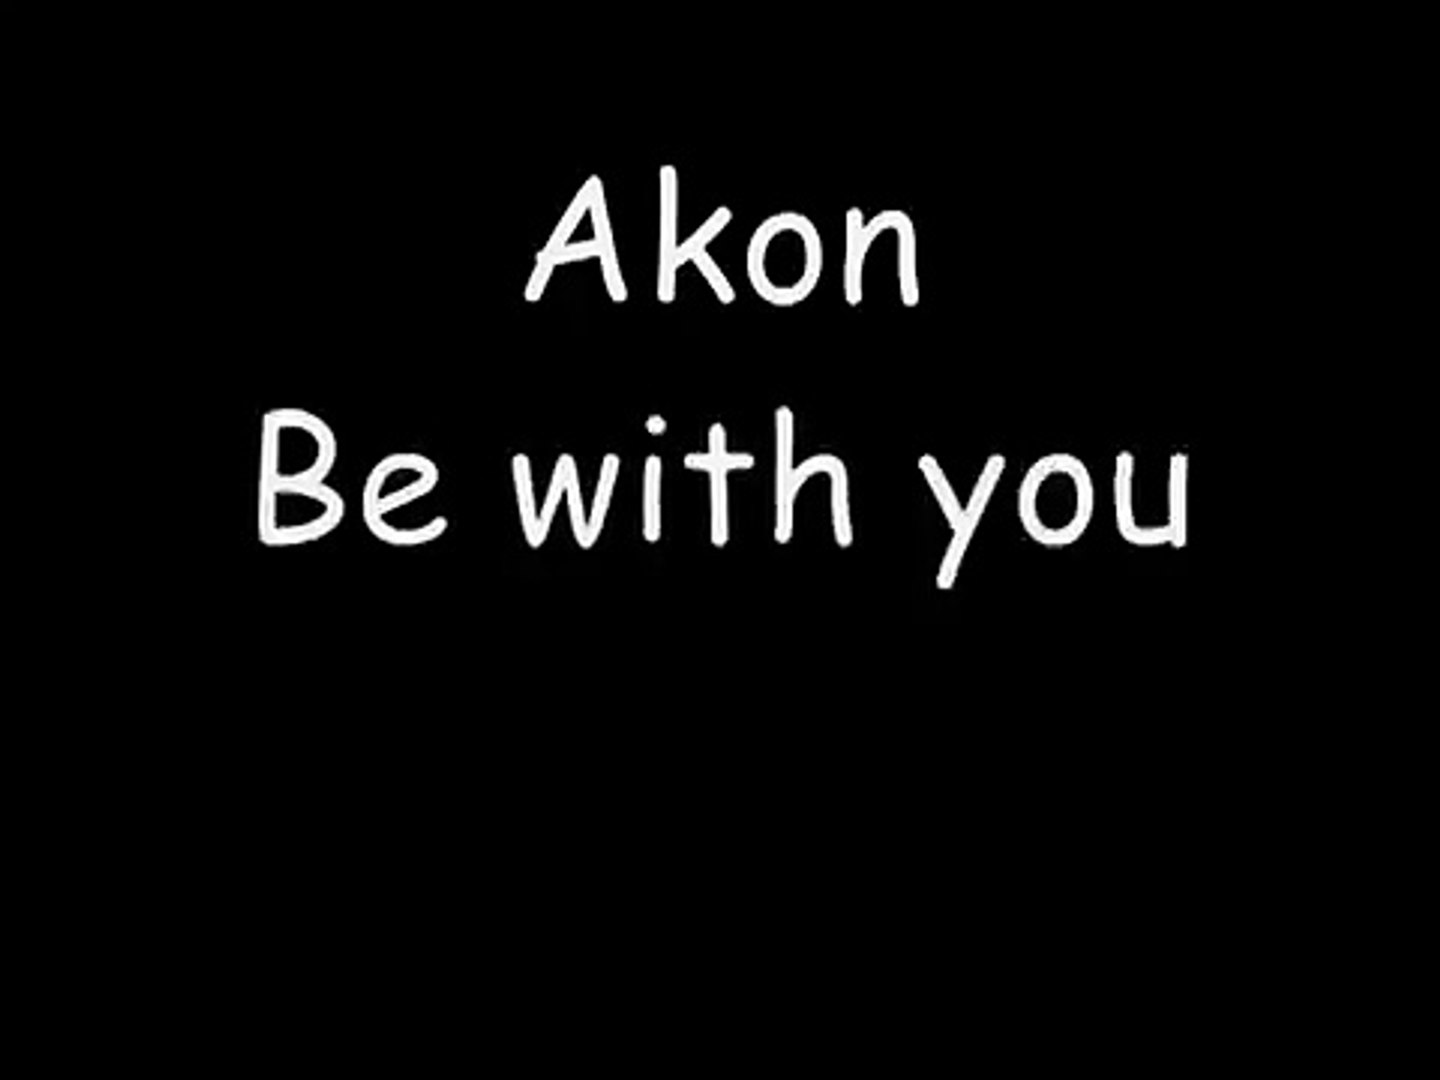 Akon I Wanna Be With You Lyrics Video Dailymotion akon nivea, akon hey hey hey nivea, akon hey hey hey nivea when i say i love sometimes those words don't explain so much you do for me can't picture a day without your face. akon i wanna be with you lyrics